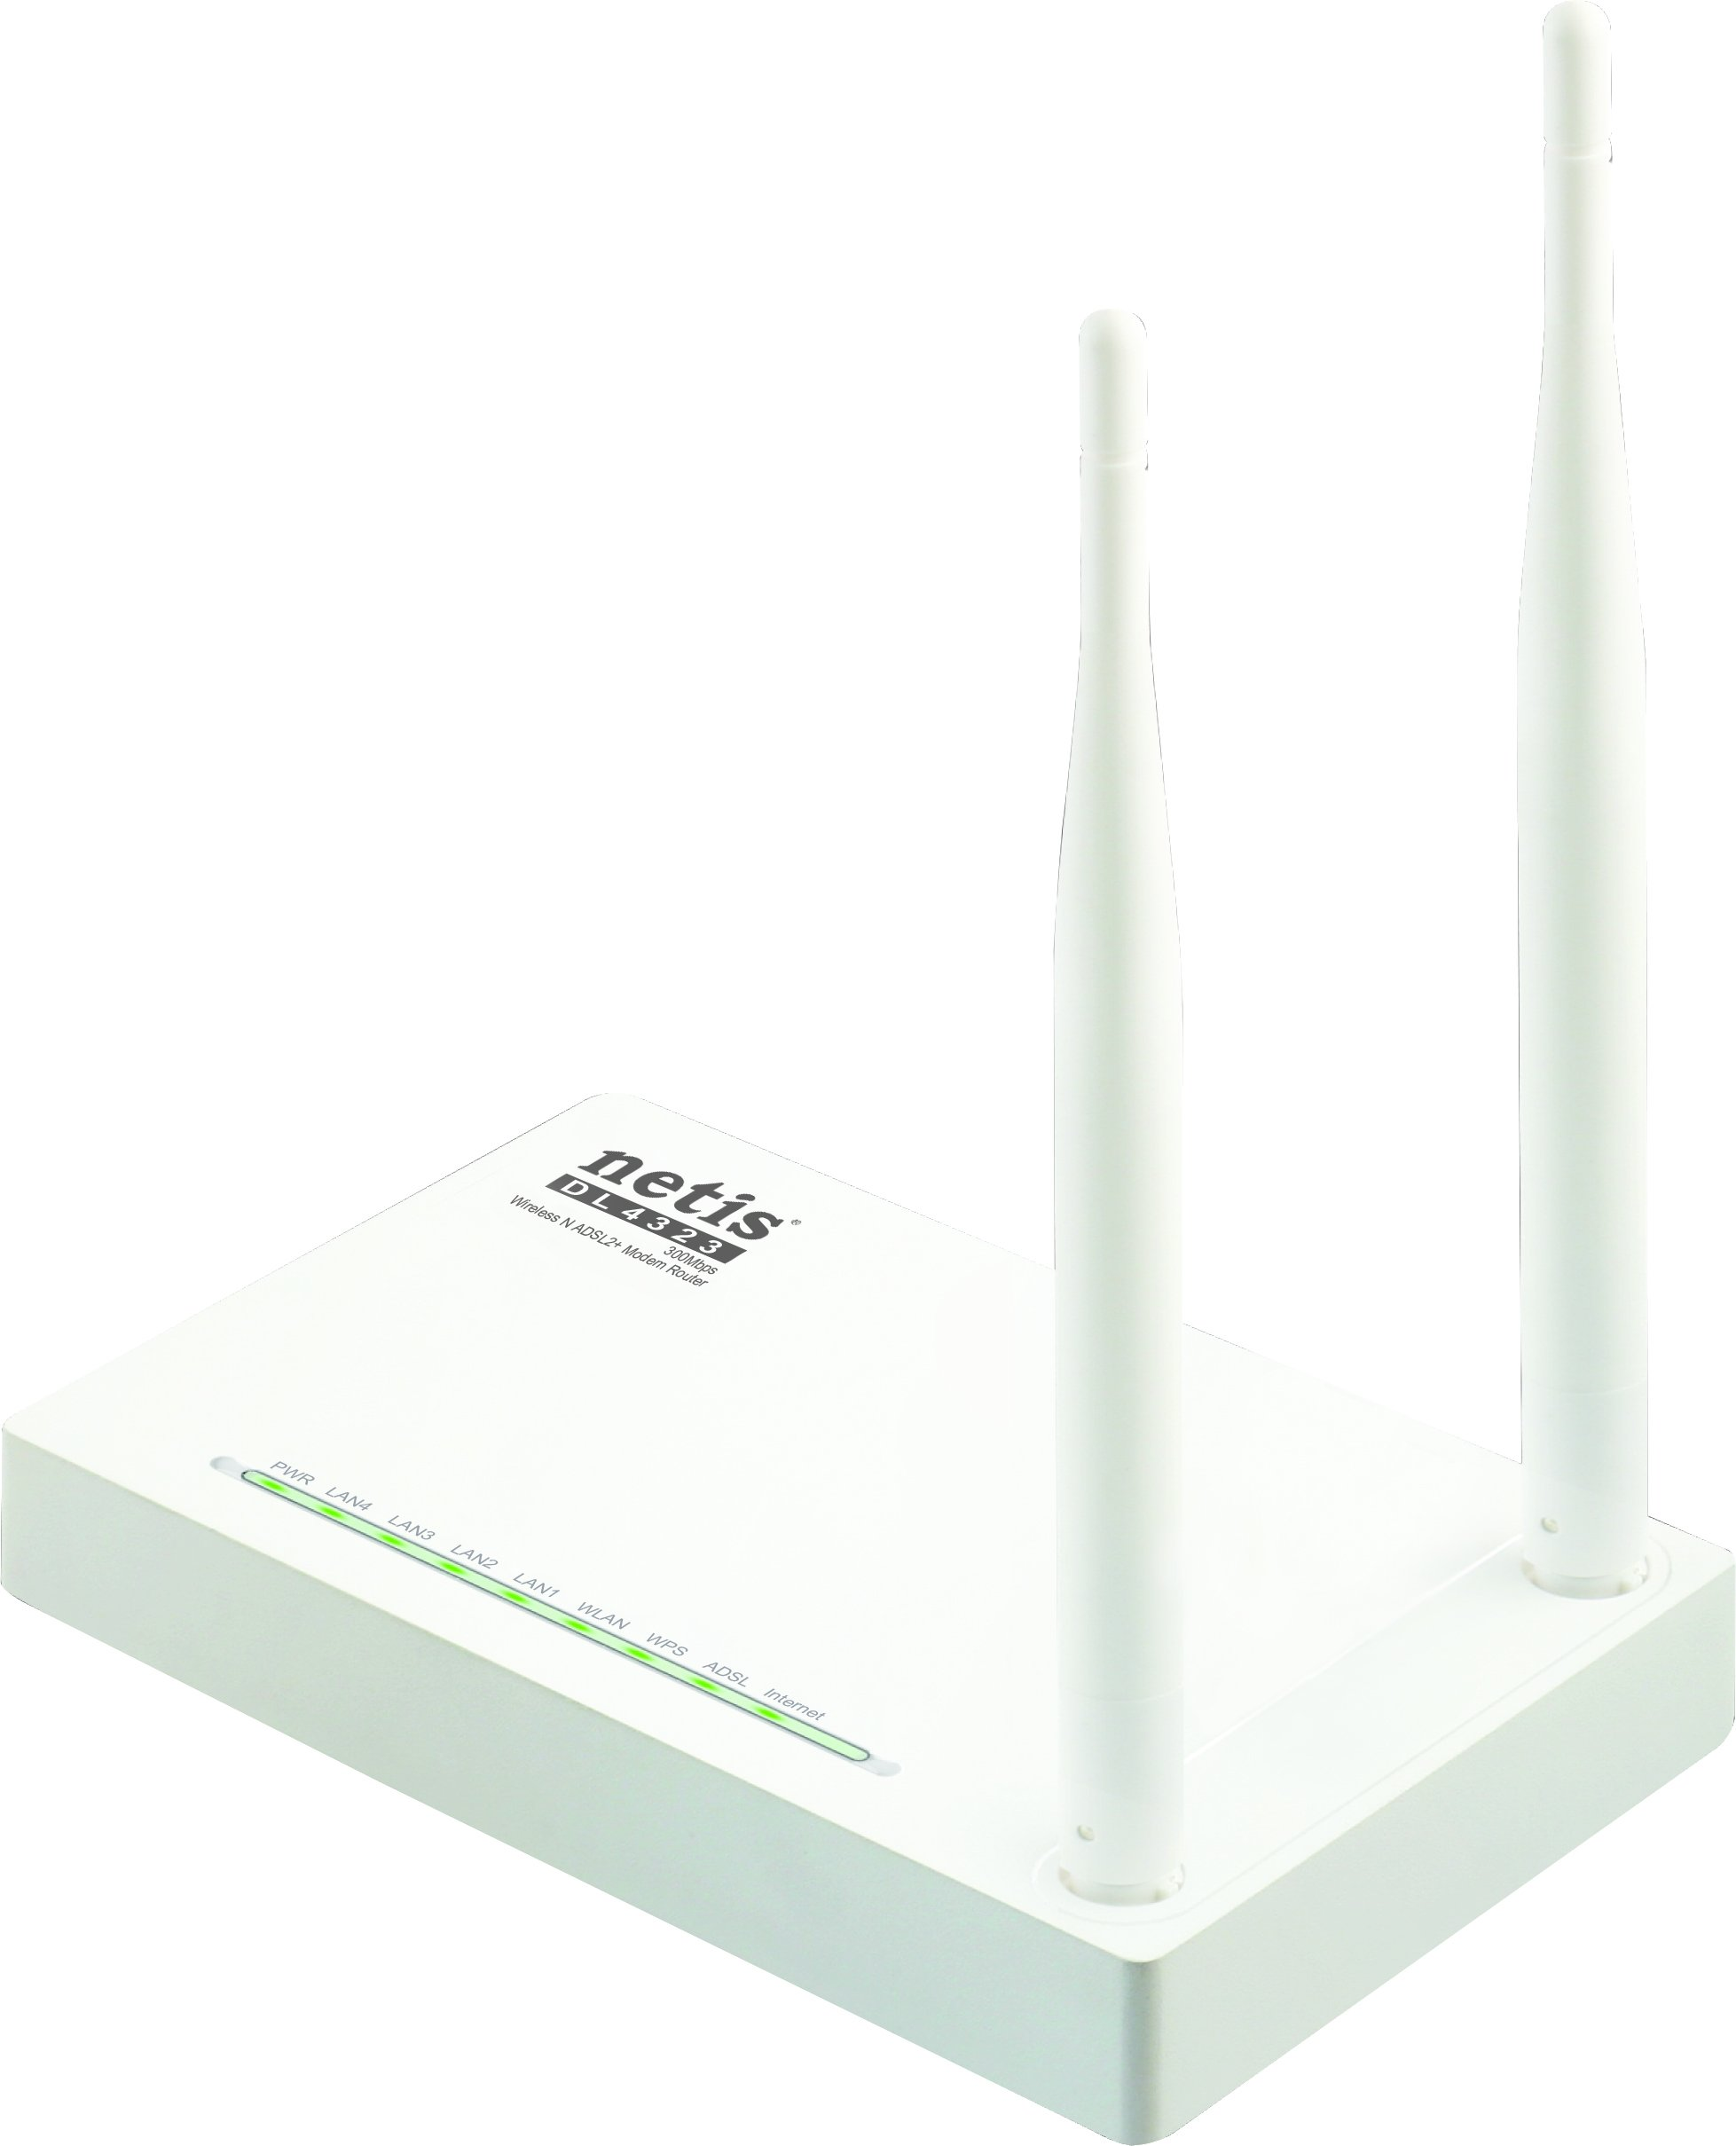 Netis DL4323 N300Mbps Wireless ADSL2+ Modem Router, 2.4Ghz, 802.11b/g/n, Dual 5dBi High Gain Antennas by Netis